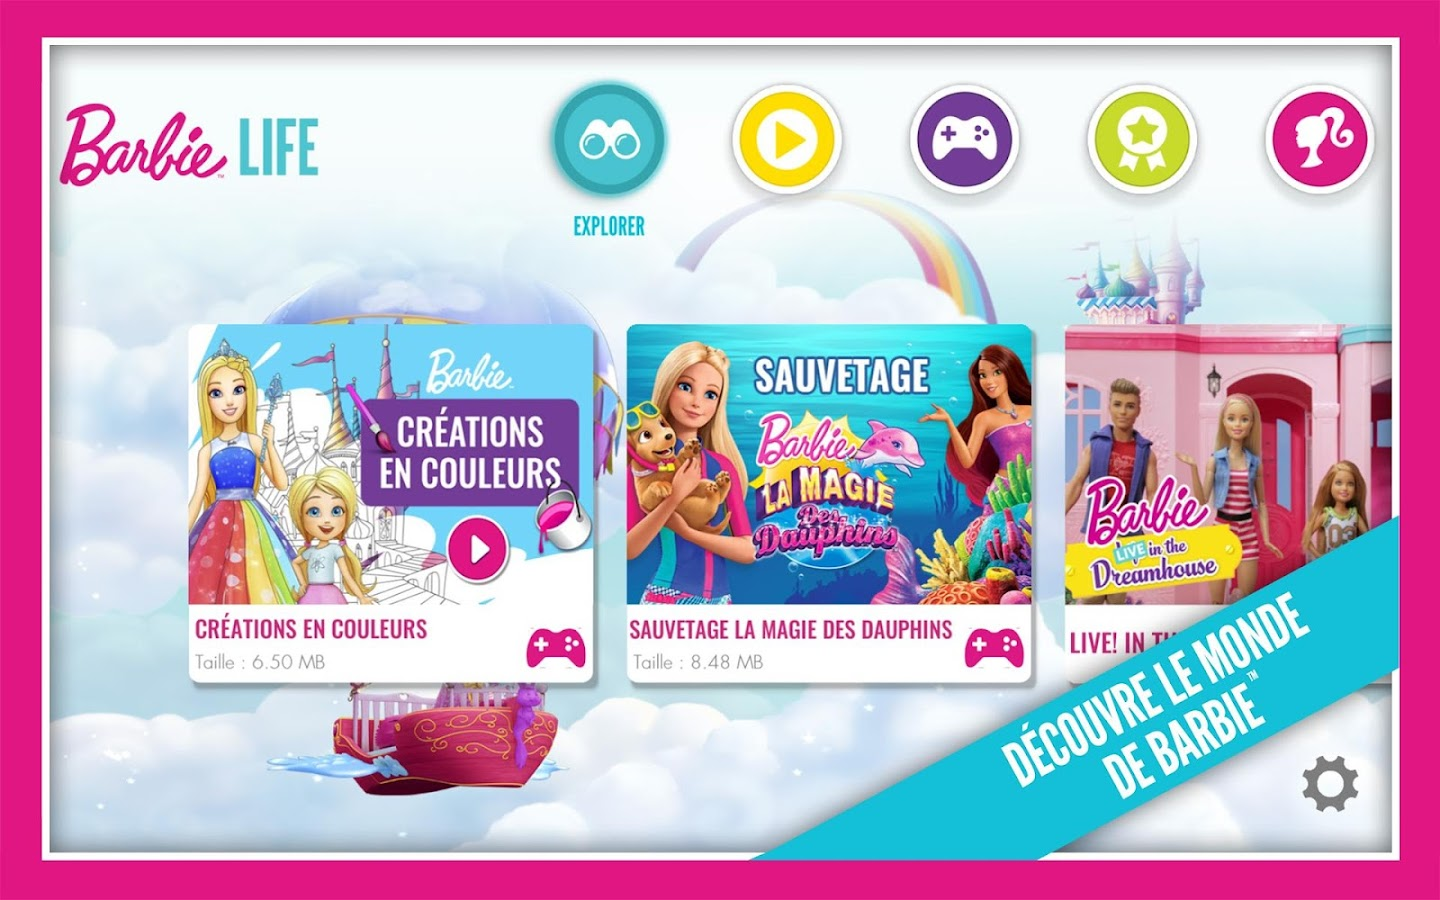 Barbie life applications android sur google play - Google jeux barbie ...